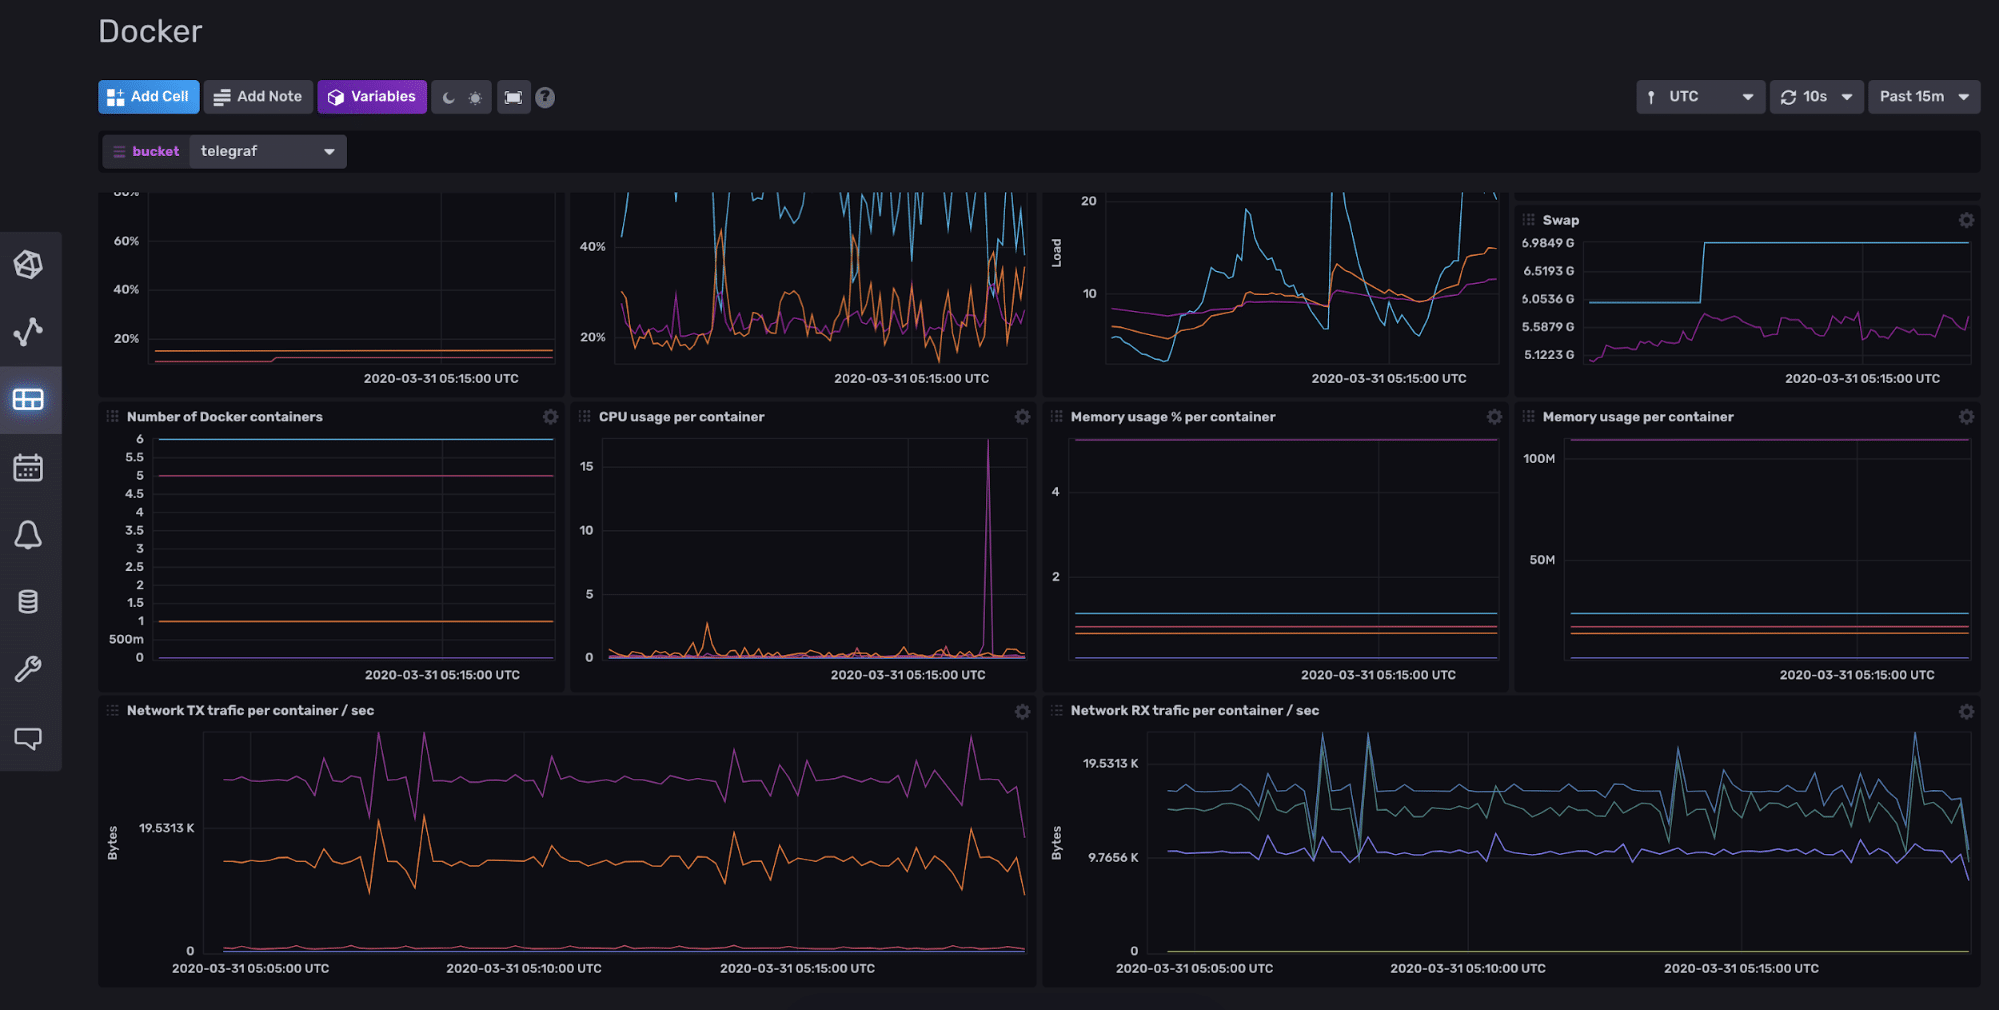 Docker Monitoring Dashboard